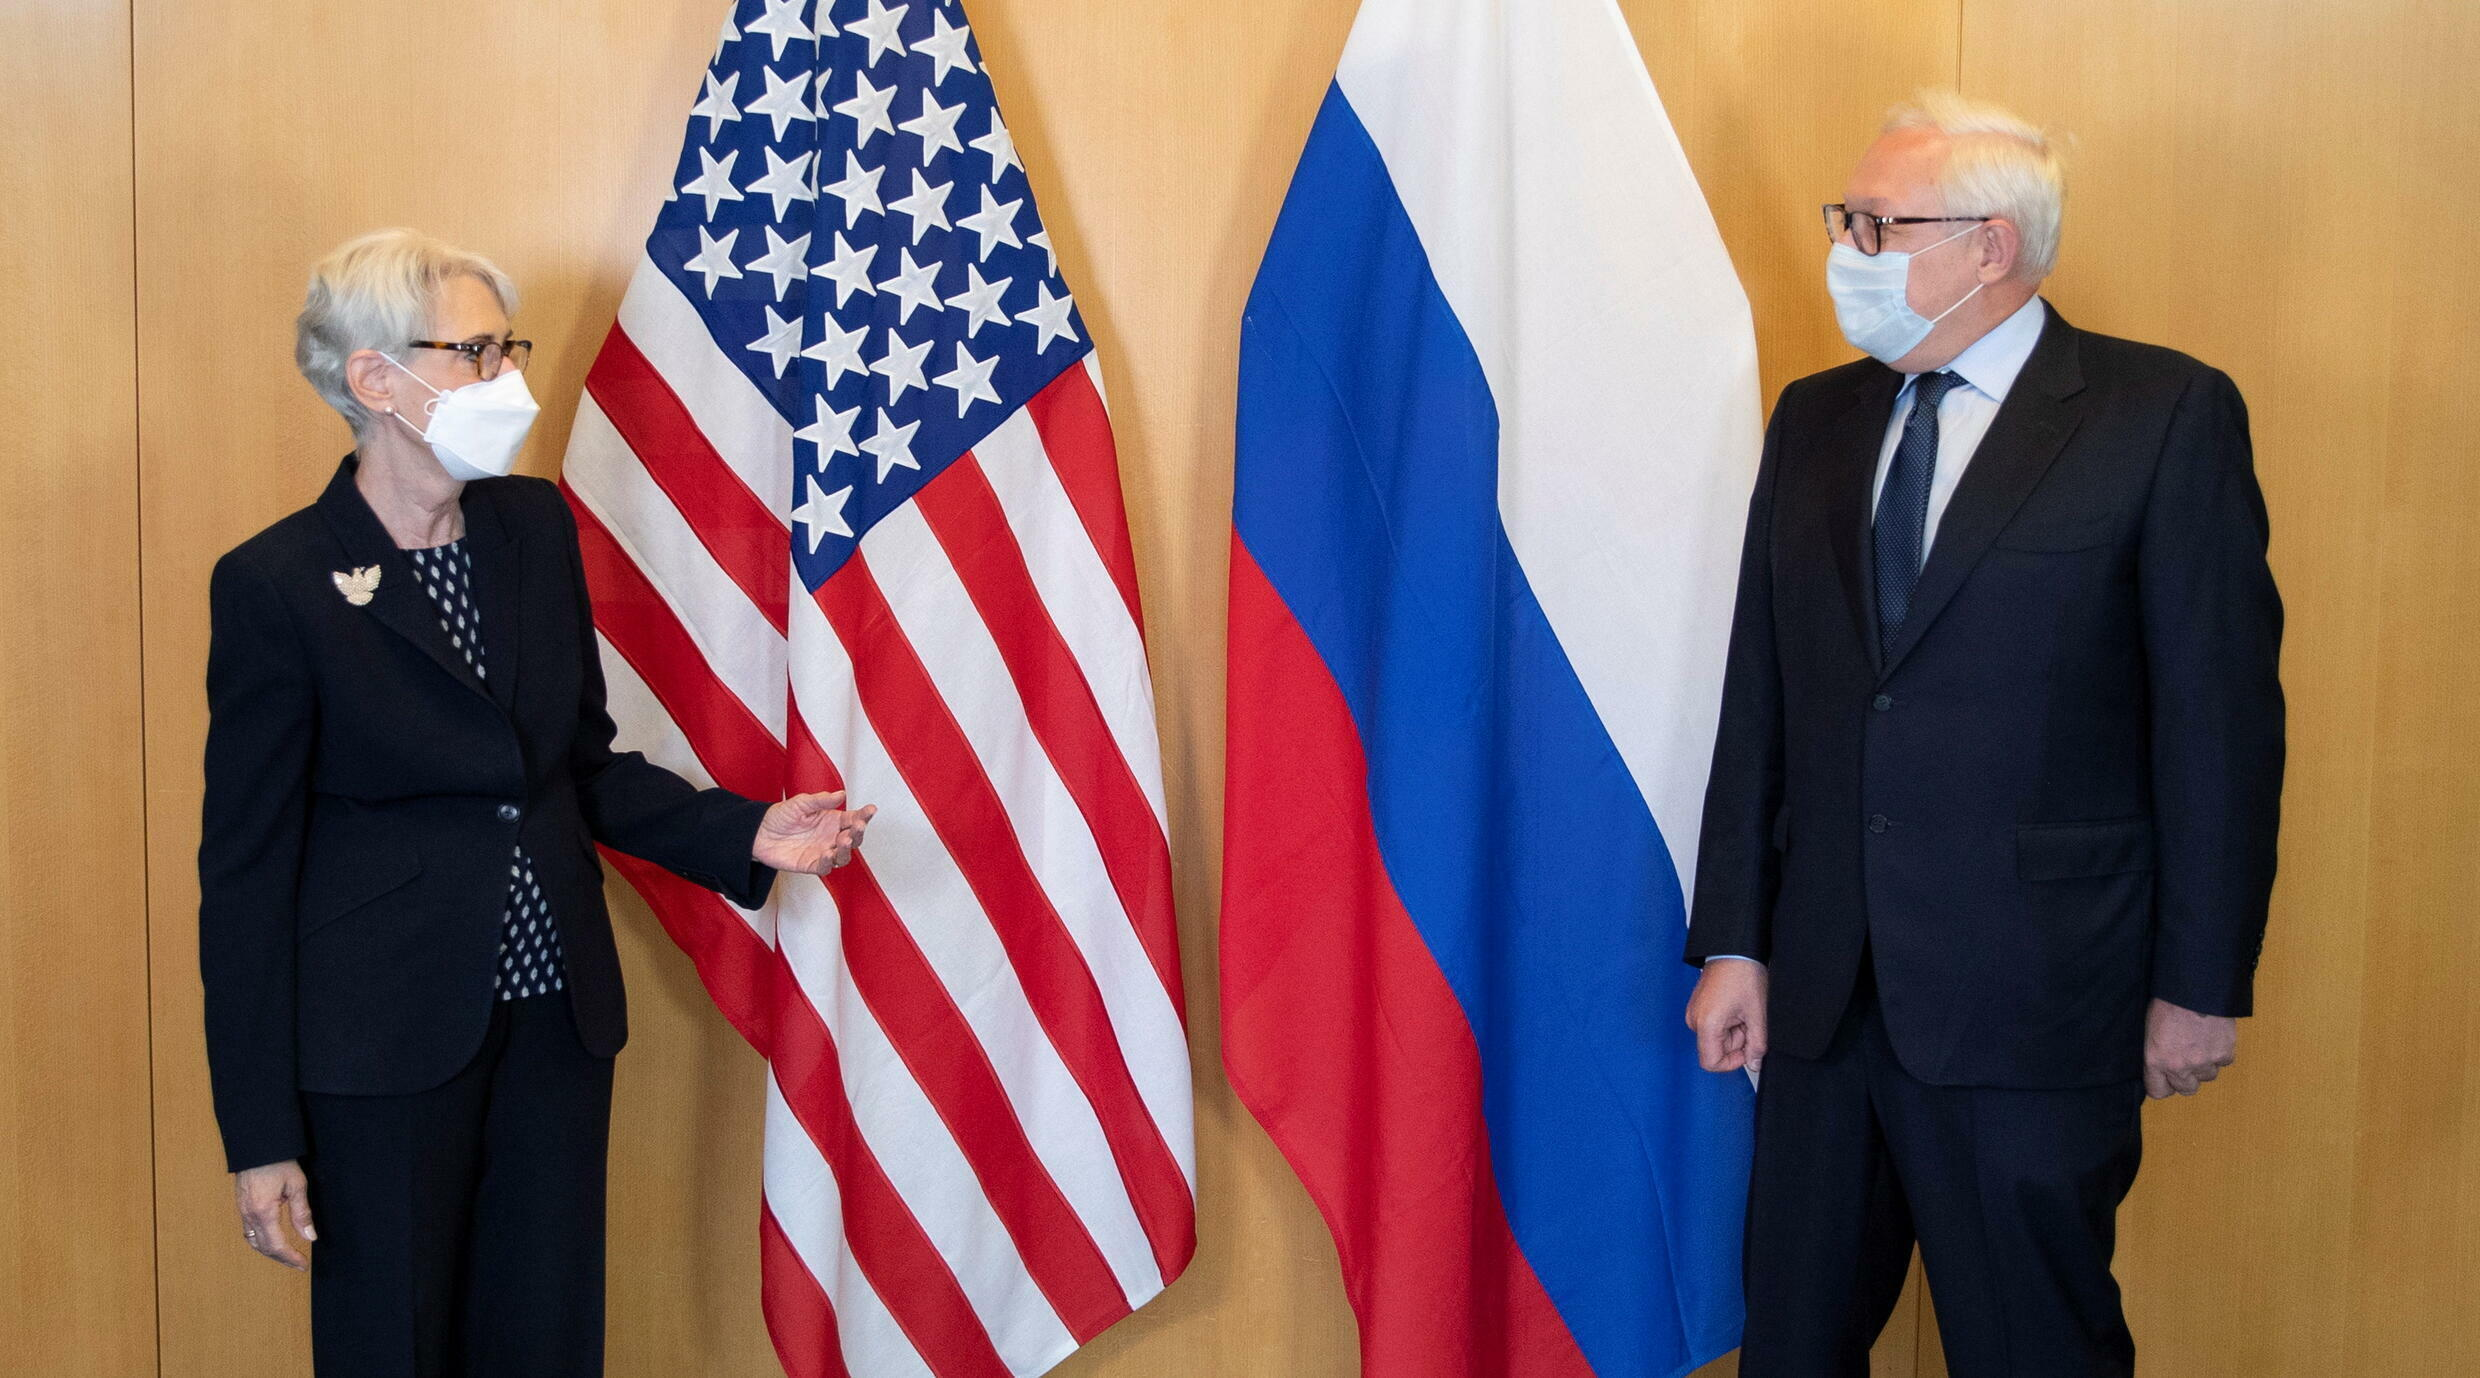 2021-07-28T124625Z_58649314_RC2KTO936XCC_RTRMADP_3_USA-RUSSIA-NUCLEAR